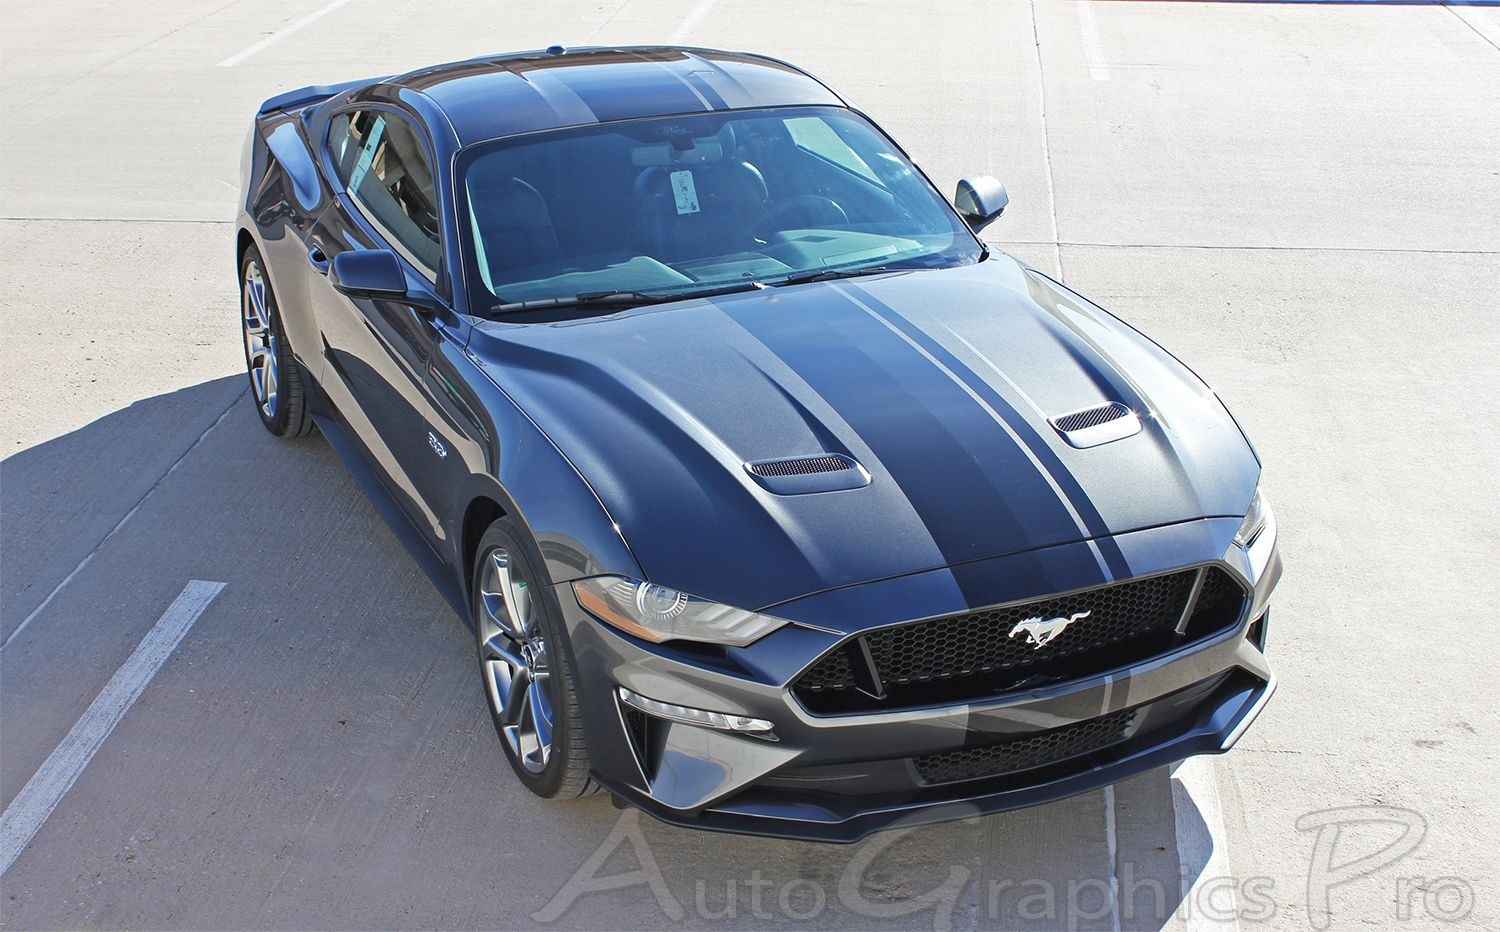 2018 2019 EURO XL Ford Mustang Racing Stripes Center Wide Decals Vinyl Graphics